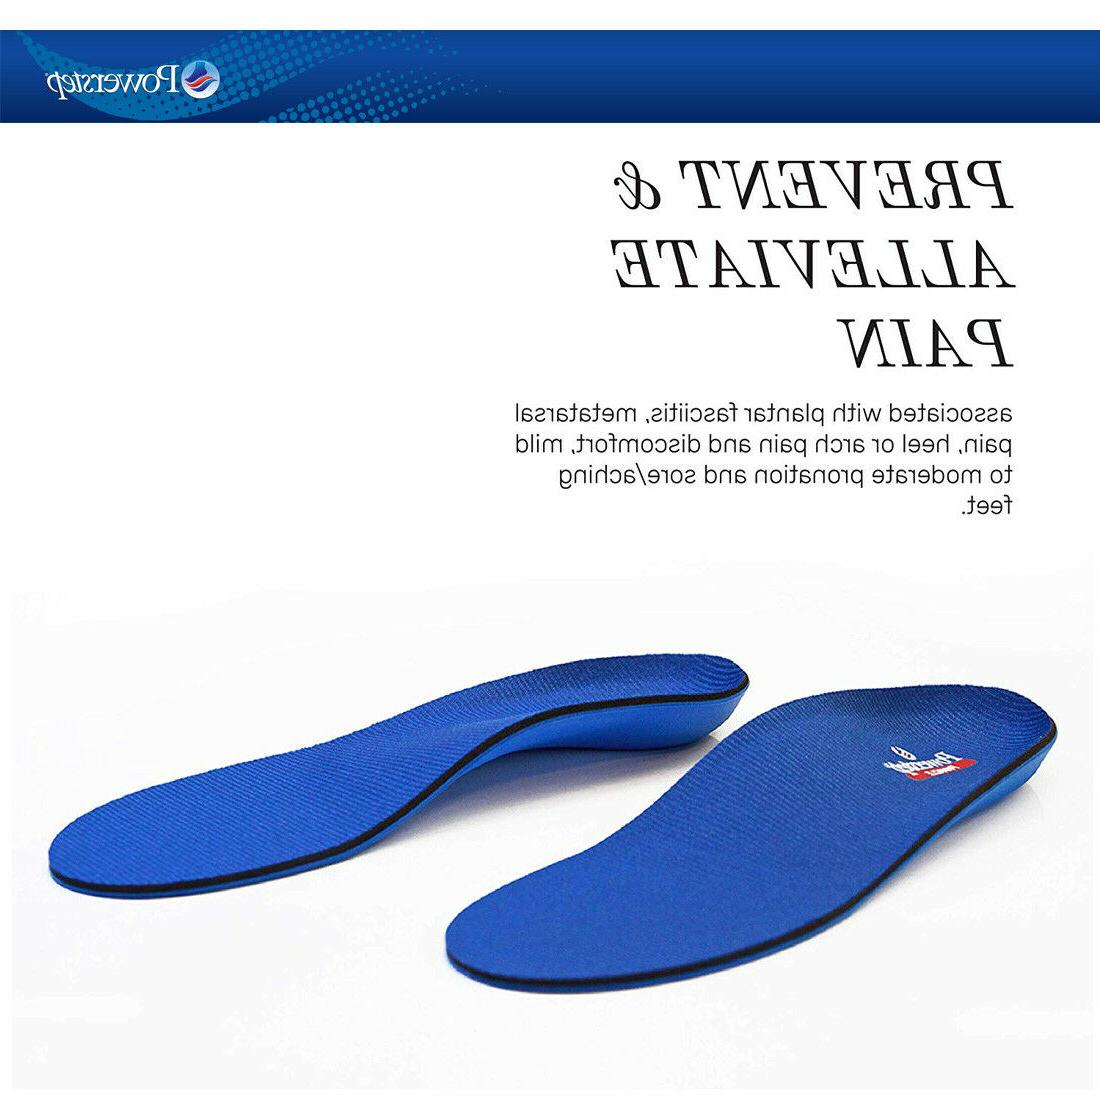 Powerstep Full Orthotic Insert DEFGJ